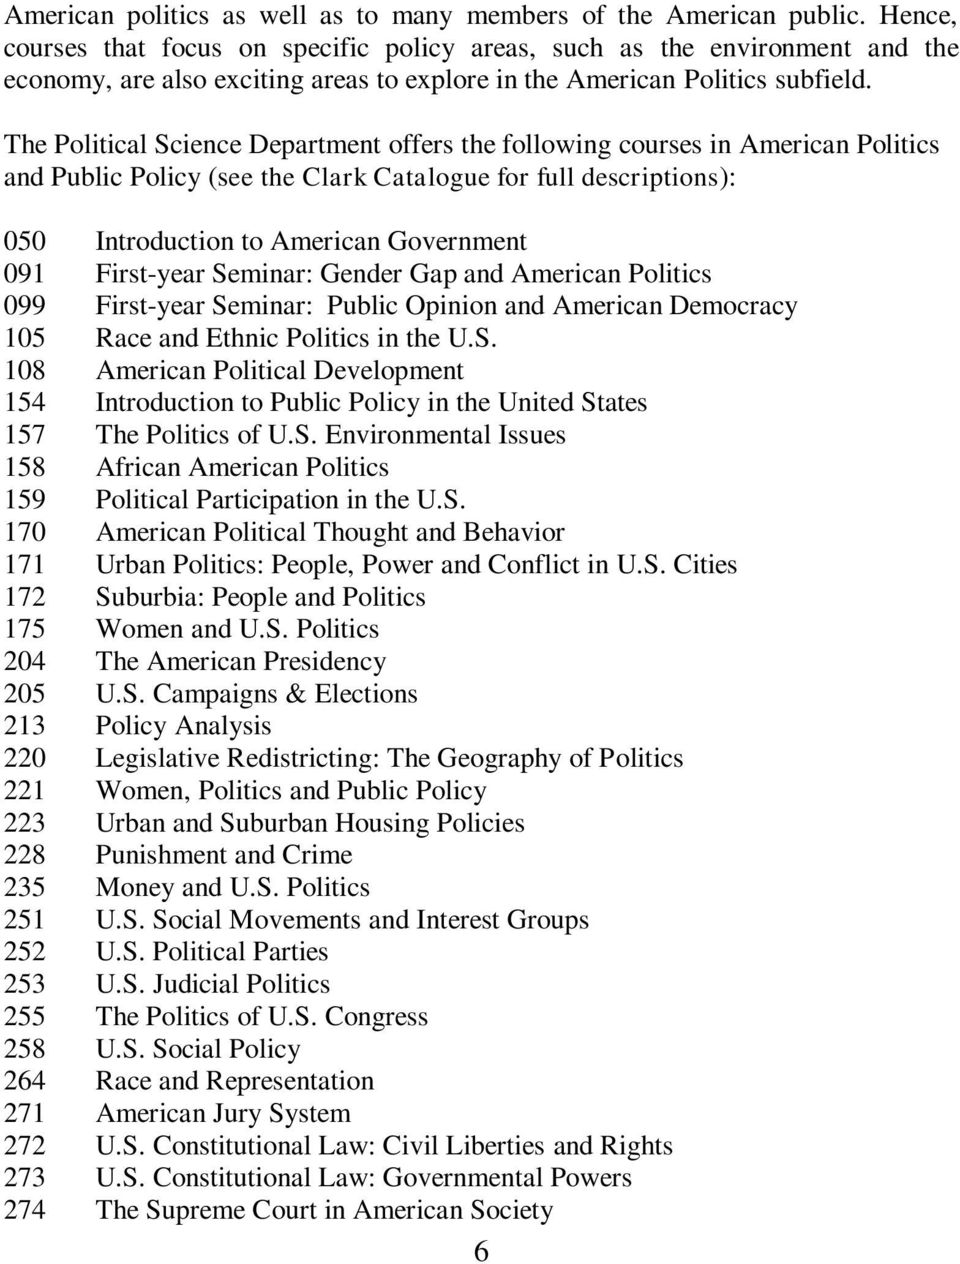 The Political Science Department offers the following courses in American Politics and Public Policy (see the Clark Catalogue for full descriptions): 050 Introduction to American Government 091